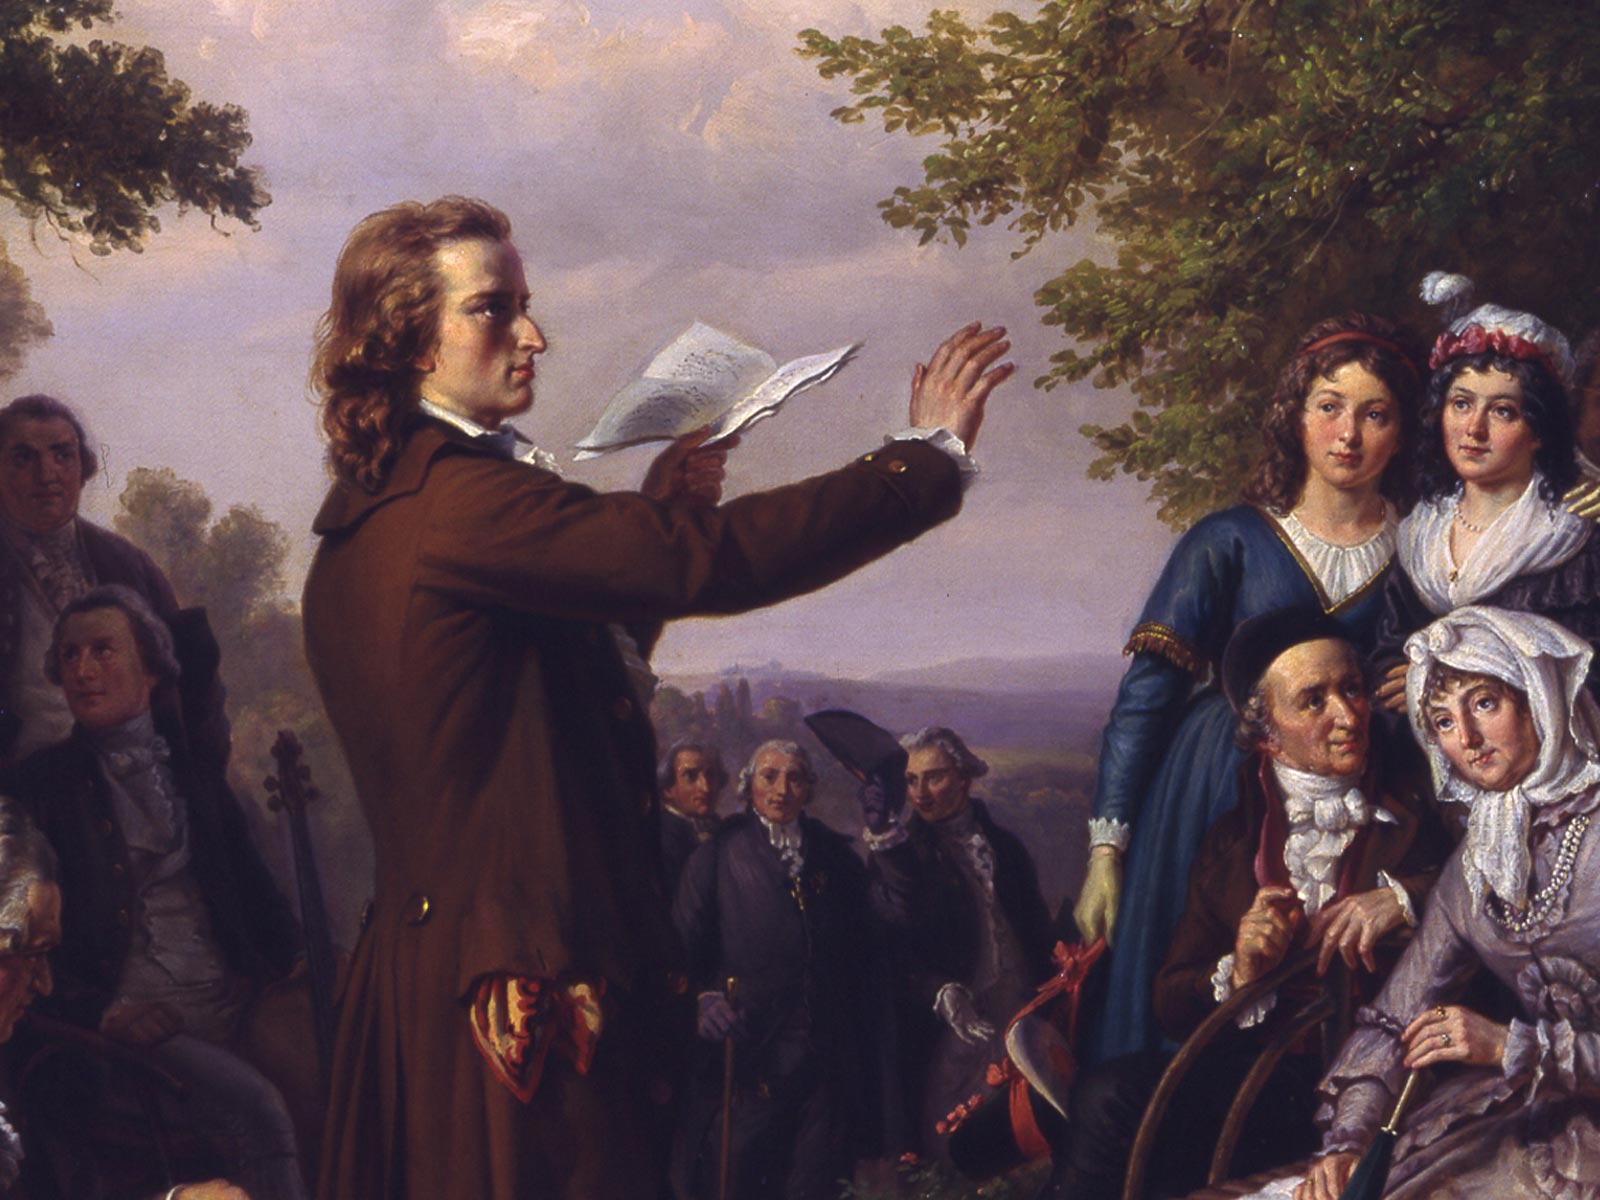 an analysis of the characteristics of the enlightenment movement in the eighteenth century europe Lesson #4 enlightenment ideas new vs old objective: for students to be able to understand the major individuals, movements, and events of both the scientific revolution and the enlightenment periods within europe.